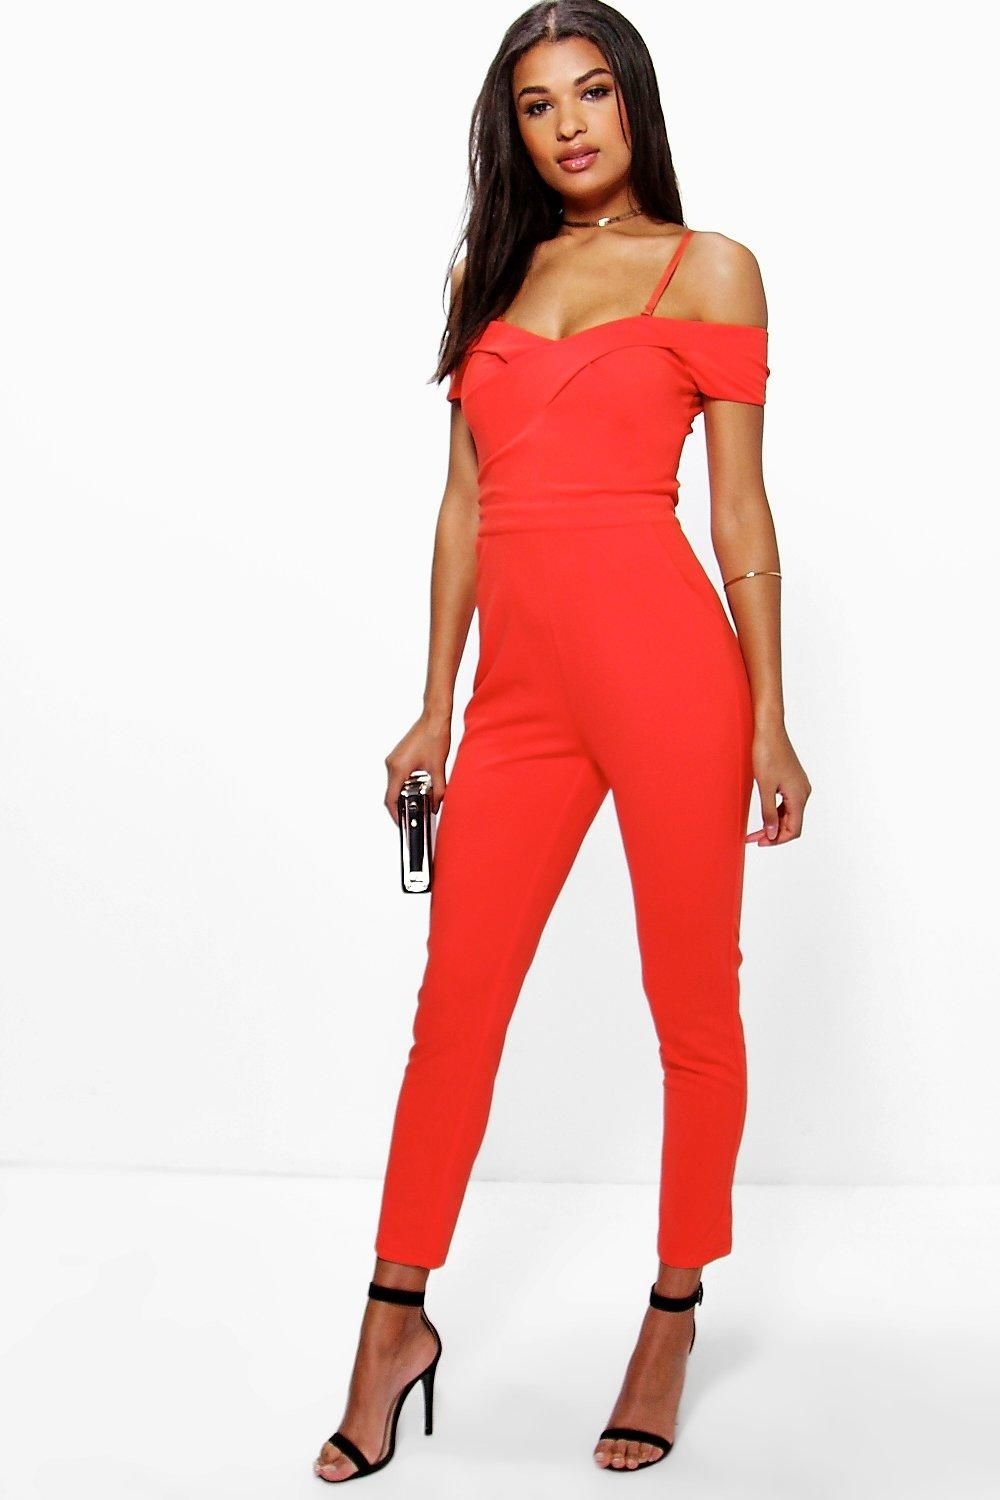 04c8fee36d48 Amy Cold Shoulder Jumpsuit Red Jumpsuit, Jumpsuits For Women, Fashion  Outfits, Fashion Clothes